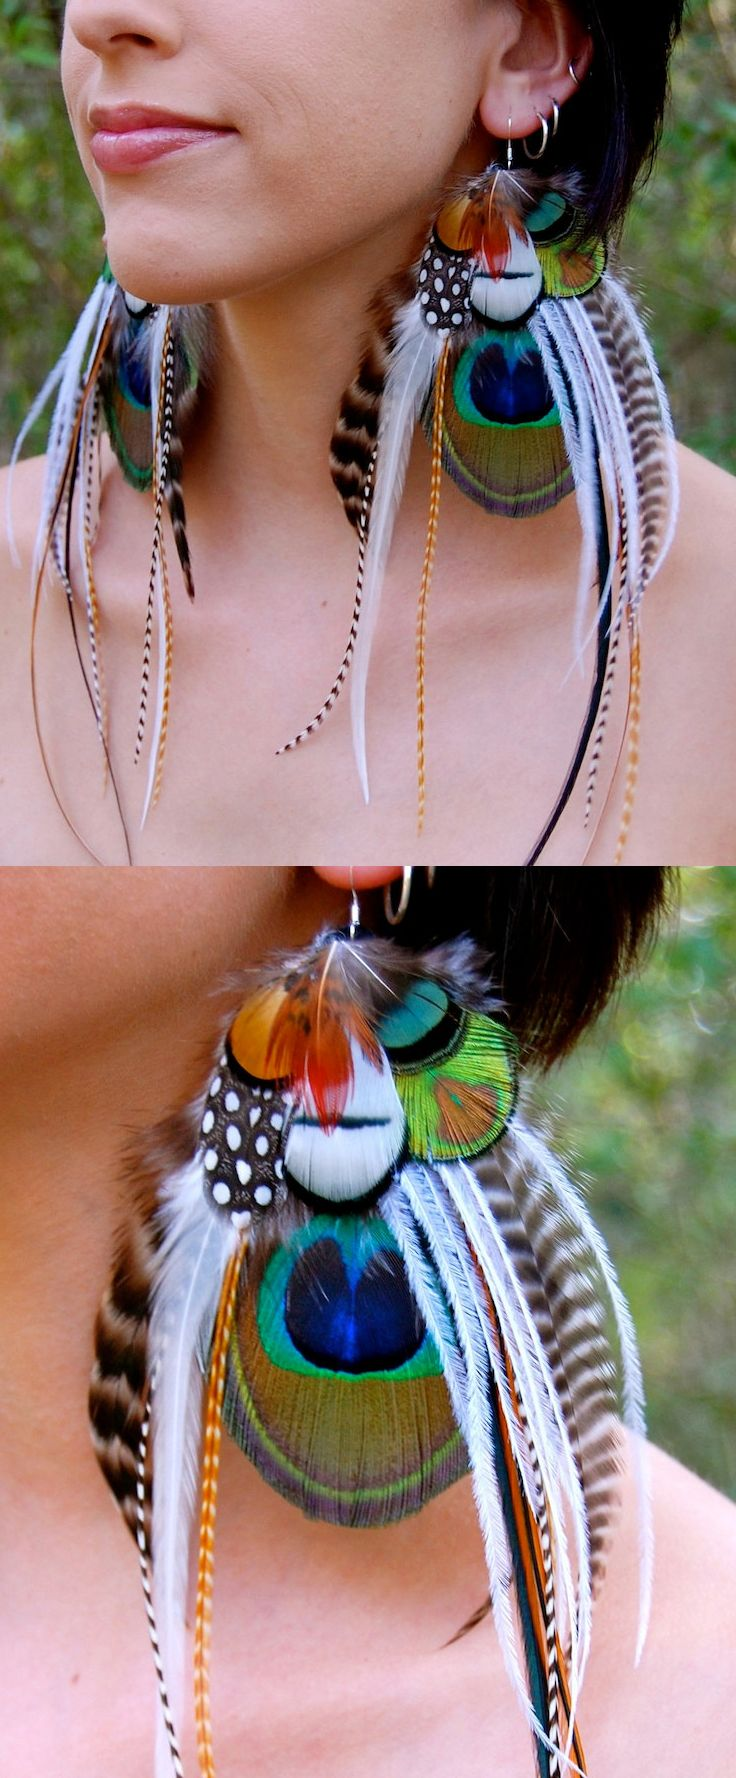 Woodland Peacock, Pheasant, Dangle Tassel Peacock Feather Earrings. Make a statement with these gorgeous peacock earrings! These stunning large peacock eye feathers are accented by natural black/white, furnace, ginger barred, and cream grizzly feathers. Beautiful white ostrich tendrils are layered on top. Peacock accessories. Burning Man Festival ideas. #peacocks #earrings #peacockearring #burningman #festivalearrings #festivals #affiliatelink #etsyfinds #fashion #ethicalfashion